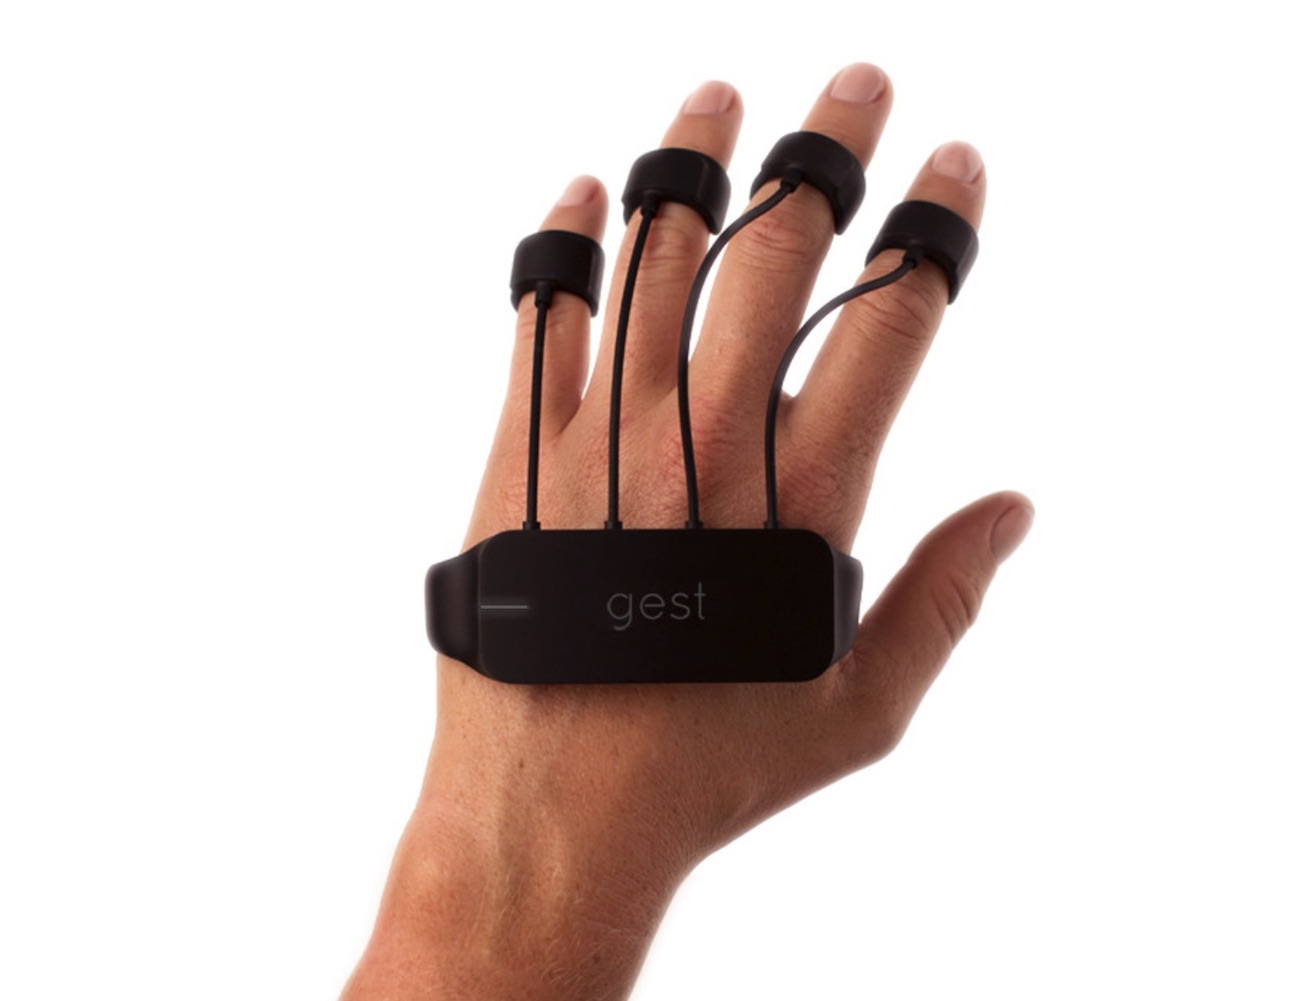 gest-the-gesture-controlled-wearable-02